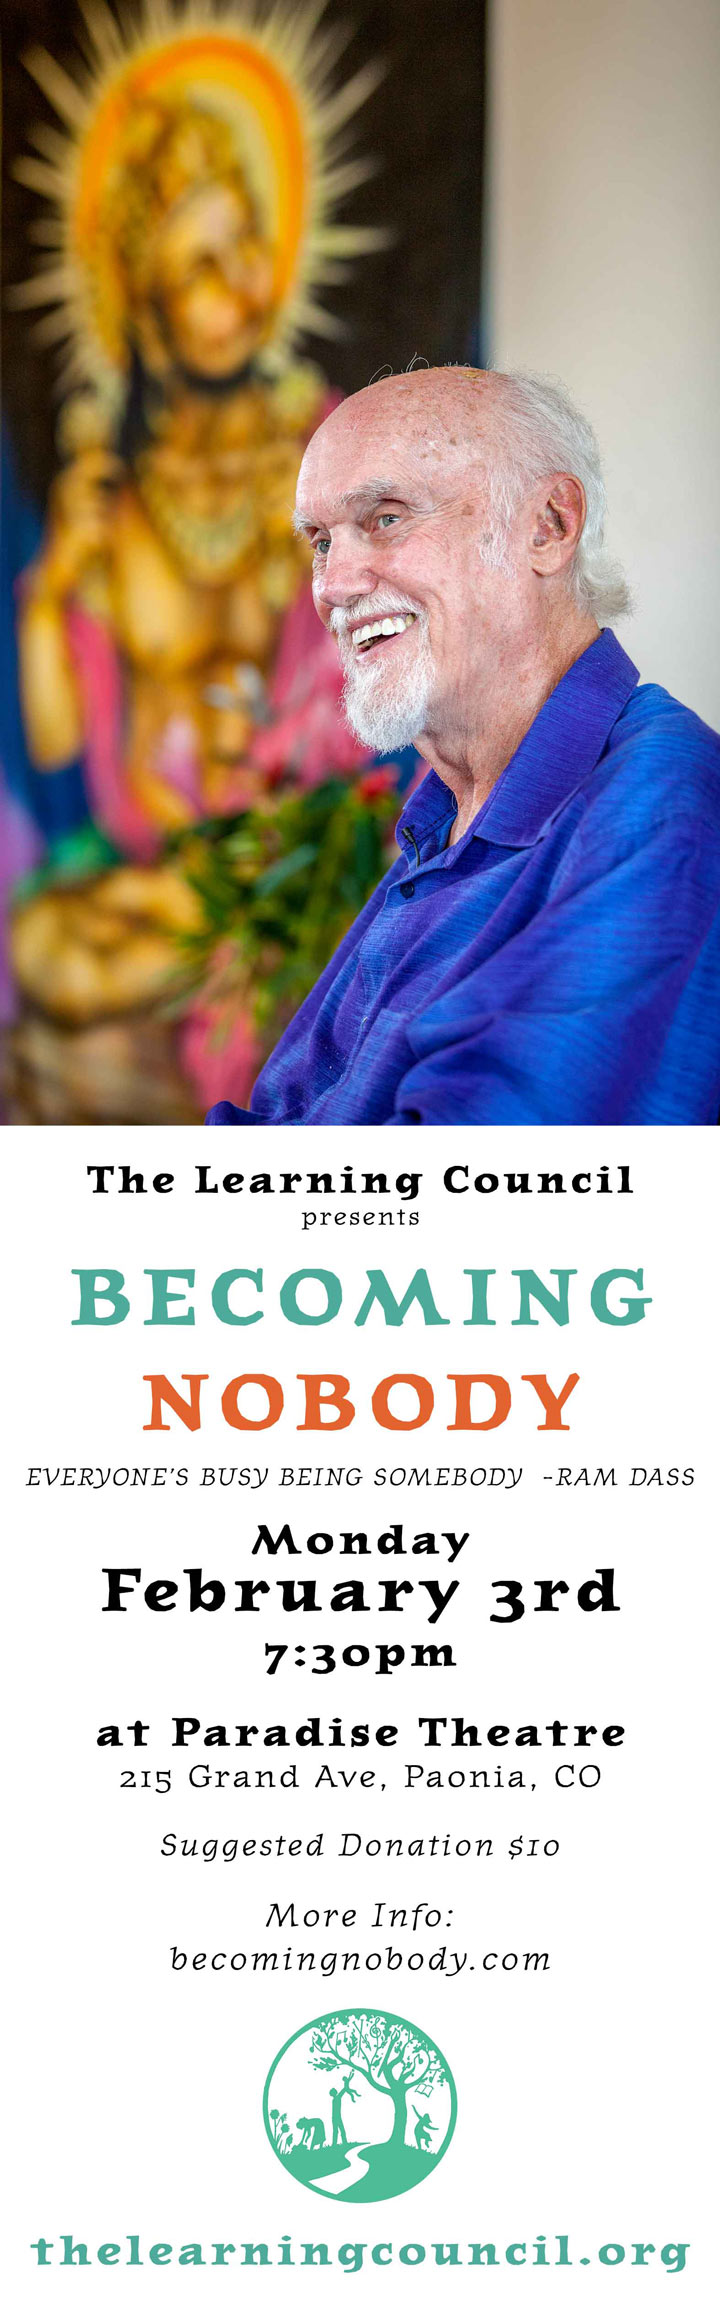 Becoming Nobody poster